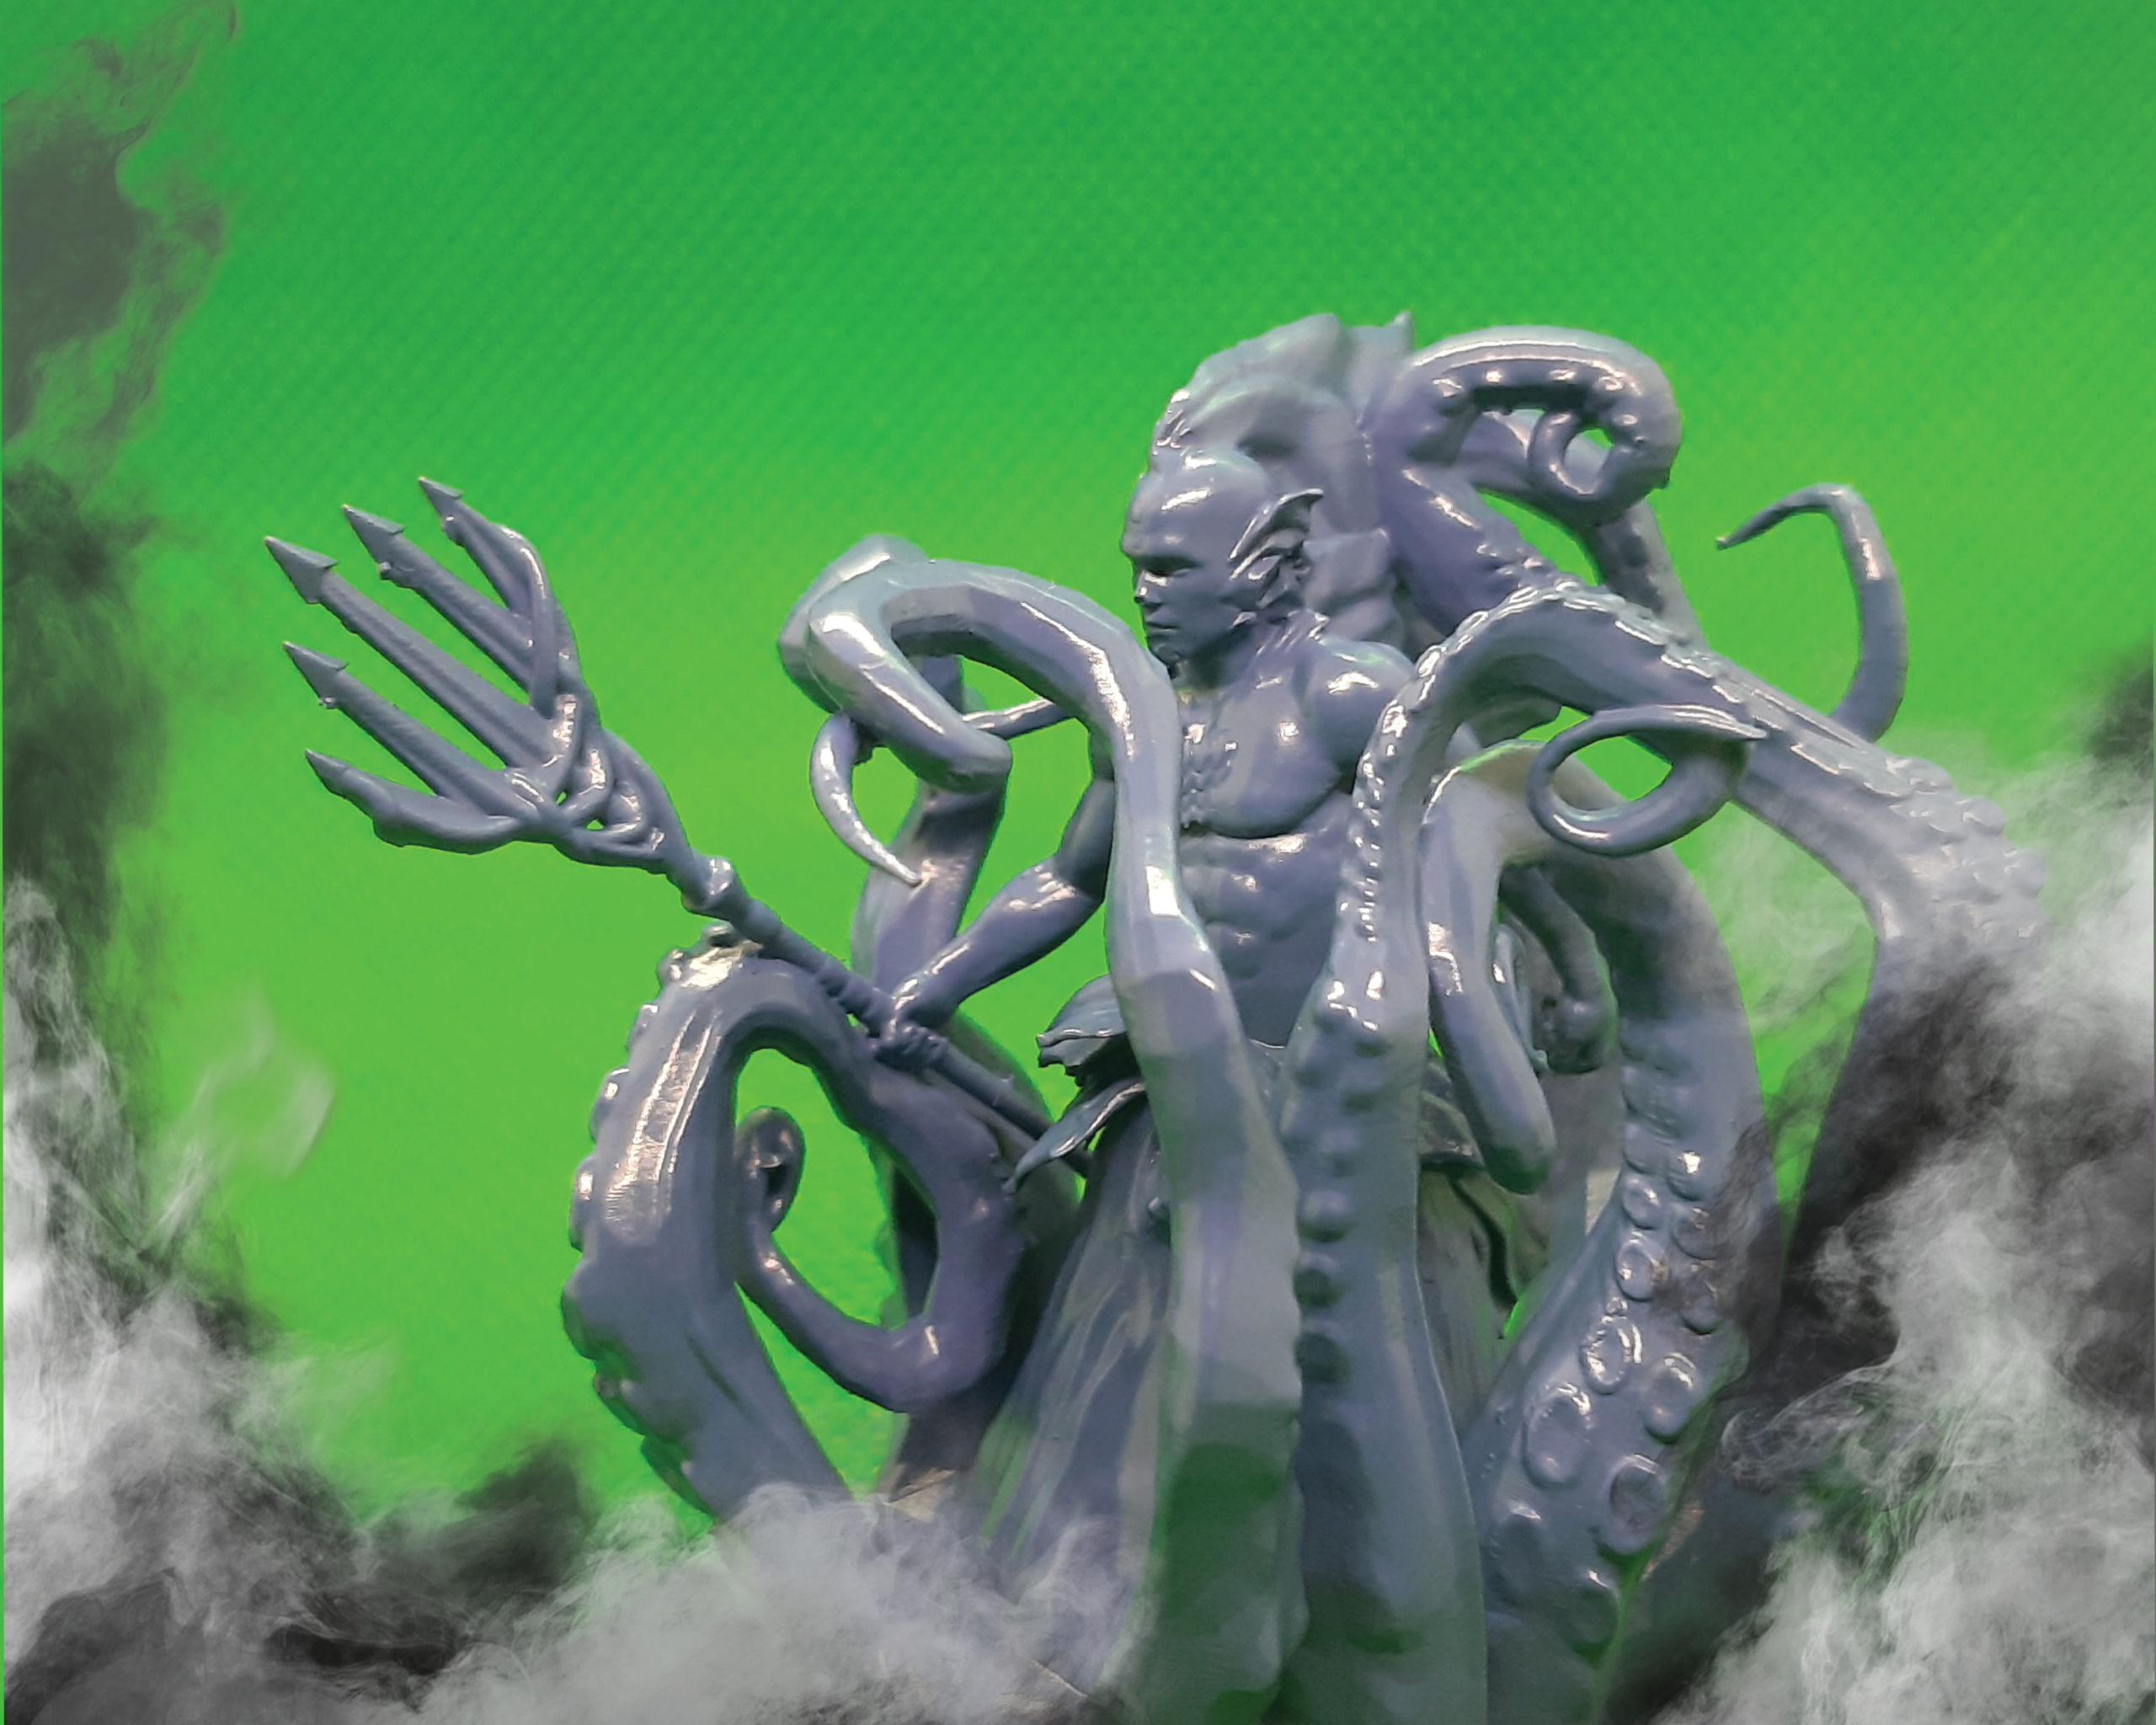 3D printed miniature of Abyssal Merfolk Triton Warrior with Trident